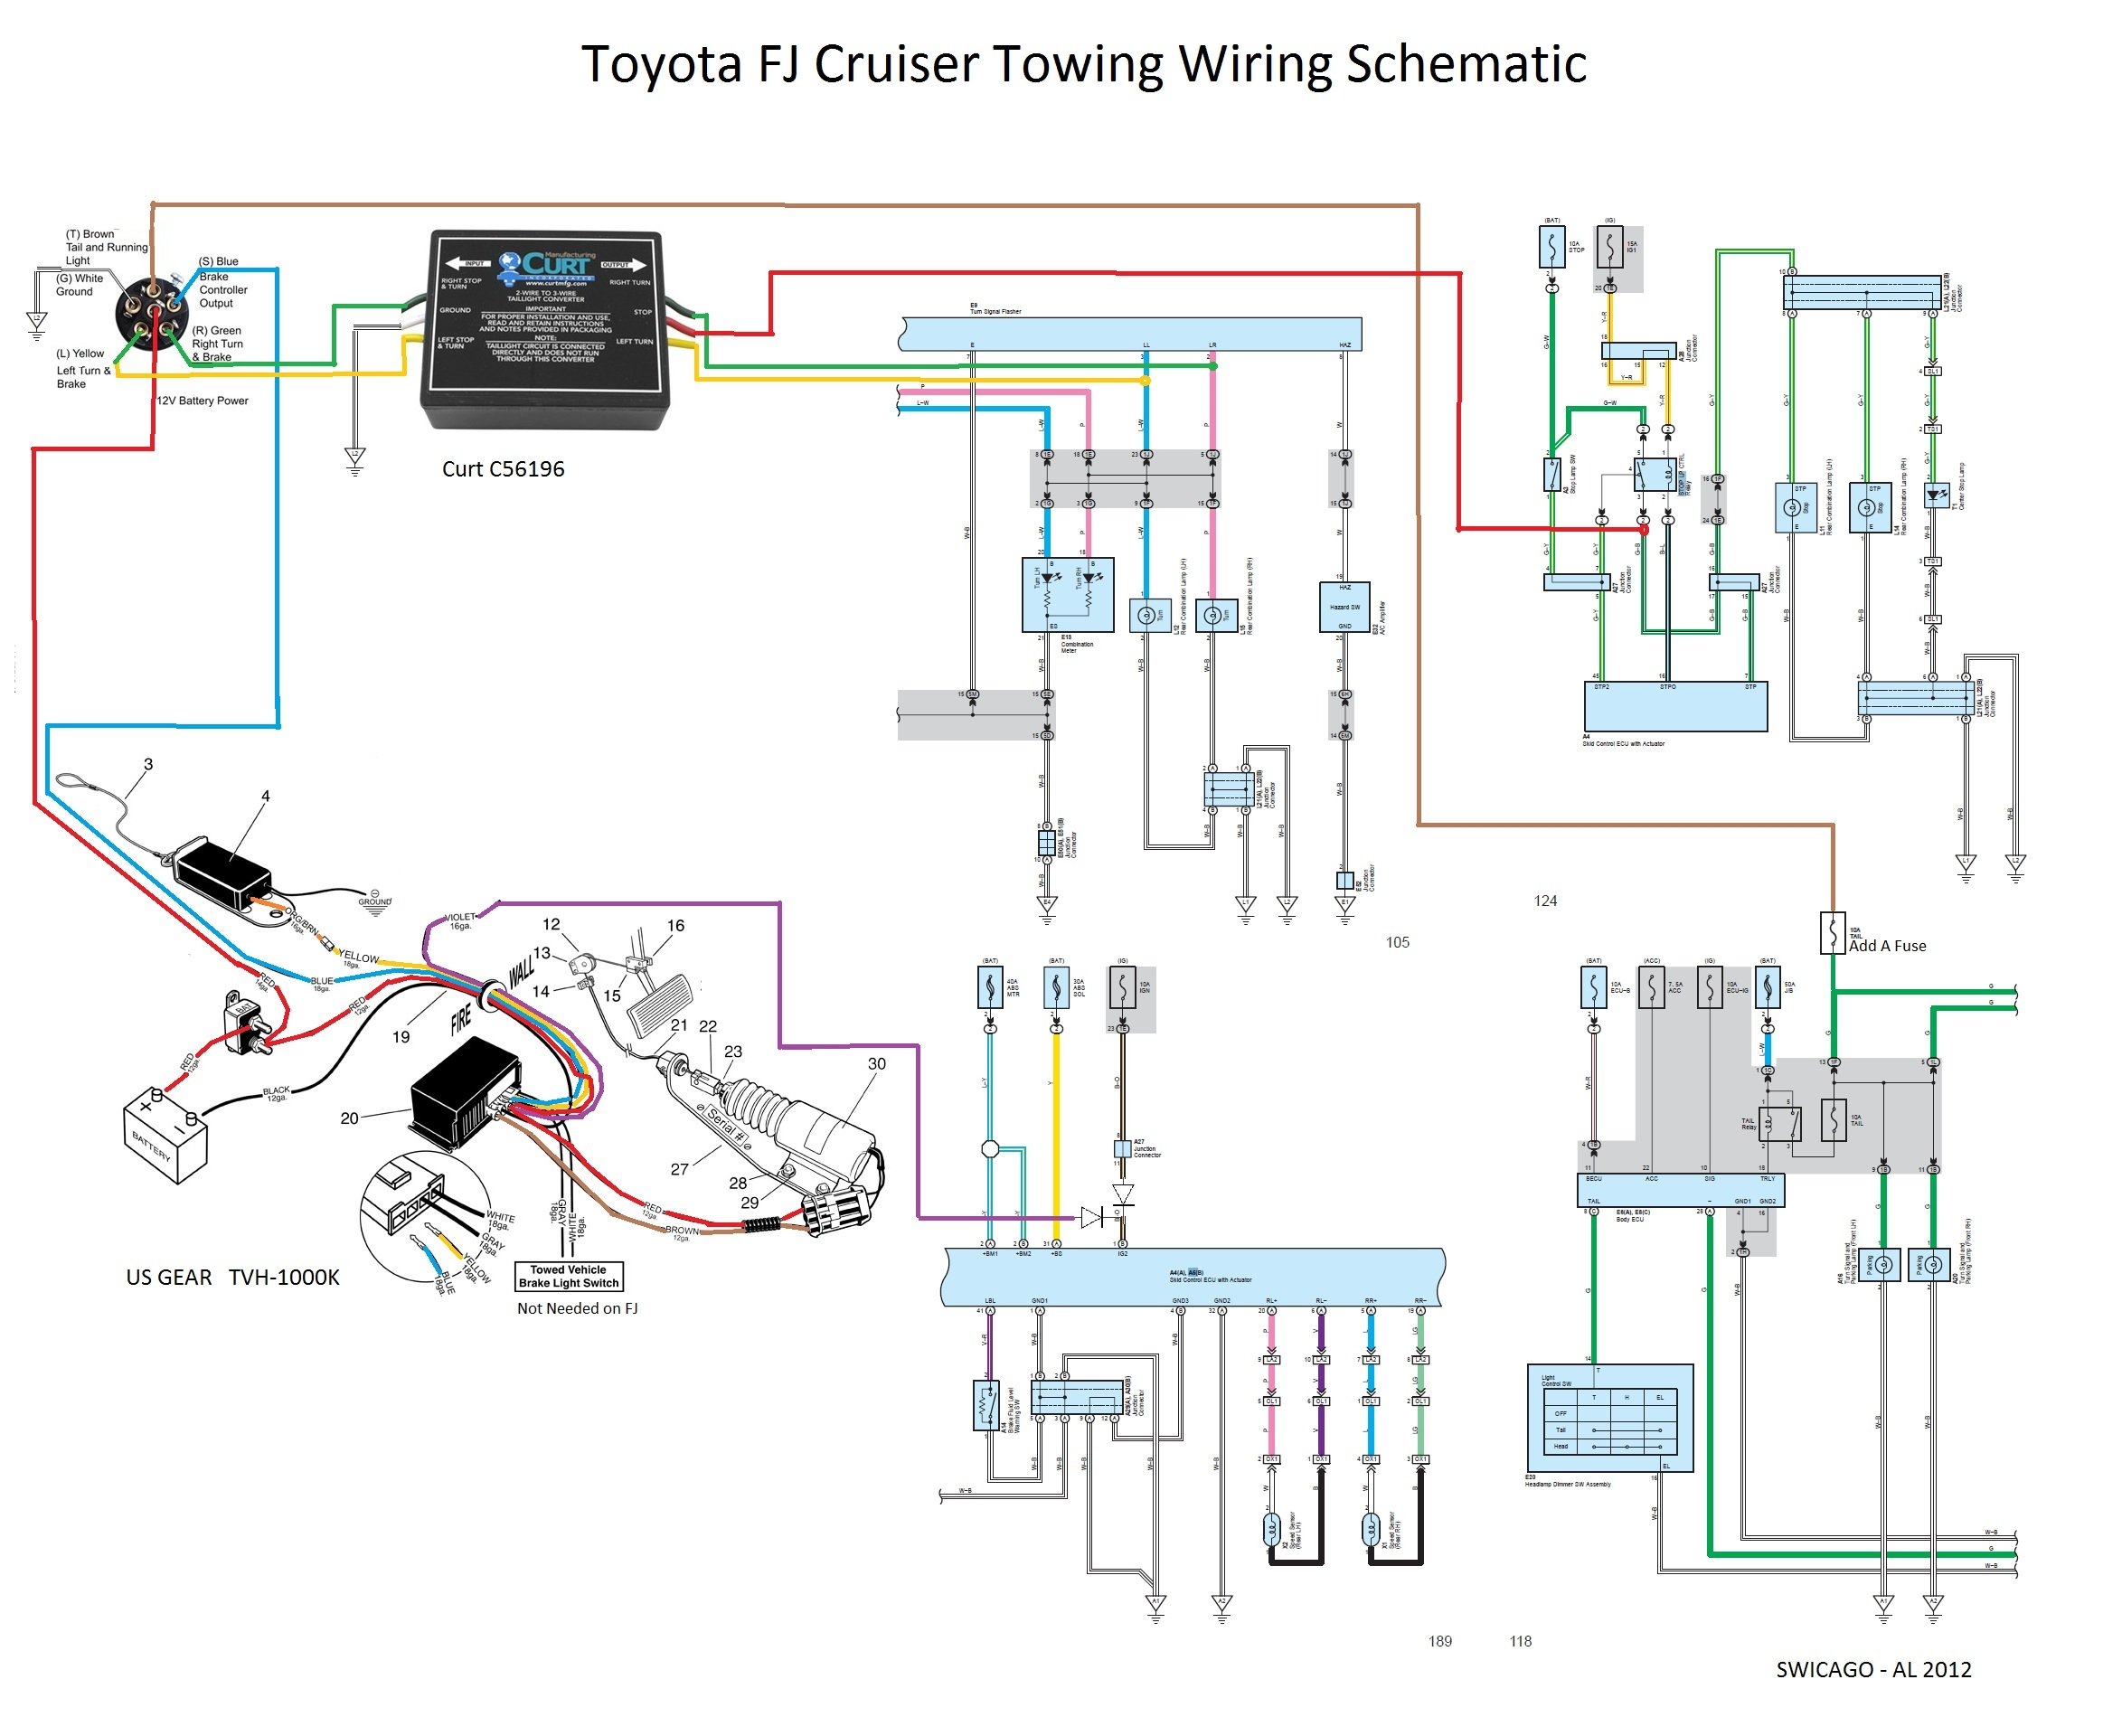 2001 Sequoia Trailer Brake Wiring Diagram from static-resources.imageservice.cloud